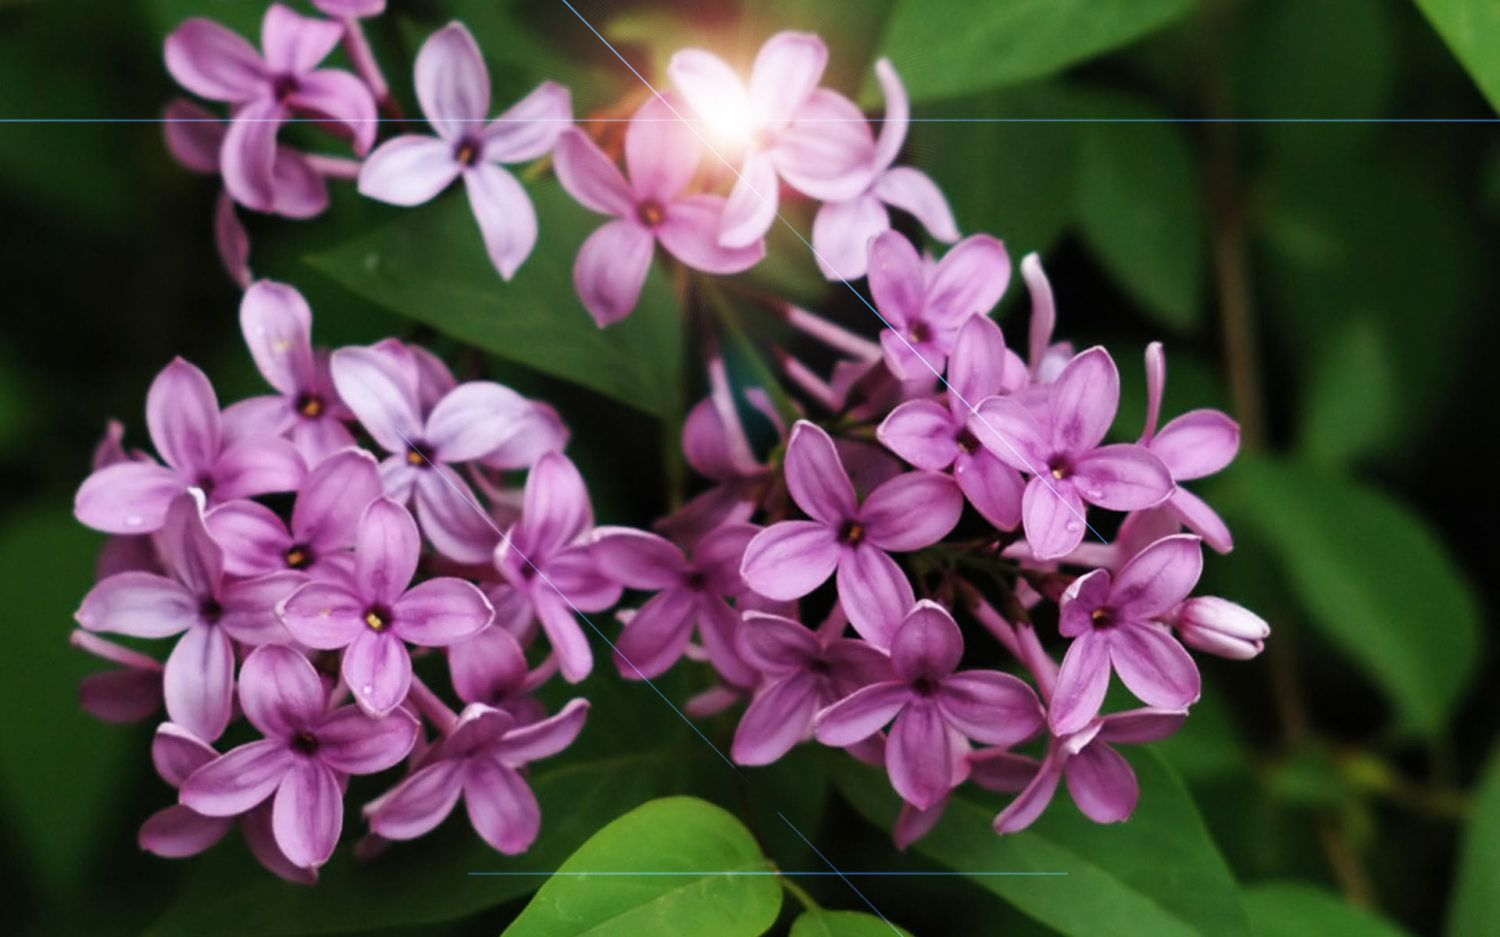 Lilac Flower Meaning Google Search Lilac Flowers Flower Meanings Flowers Nature